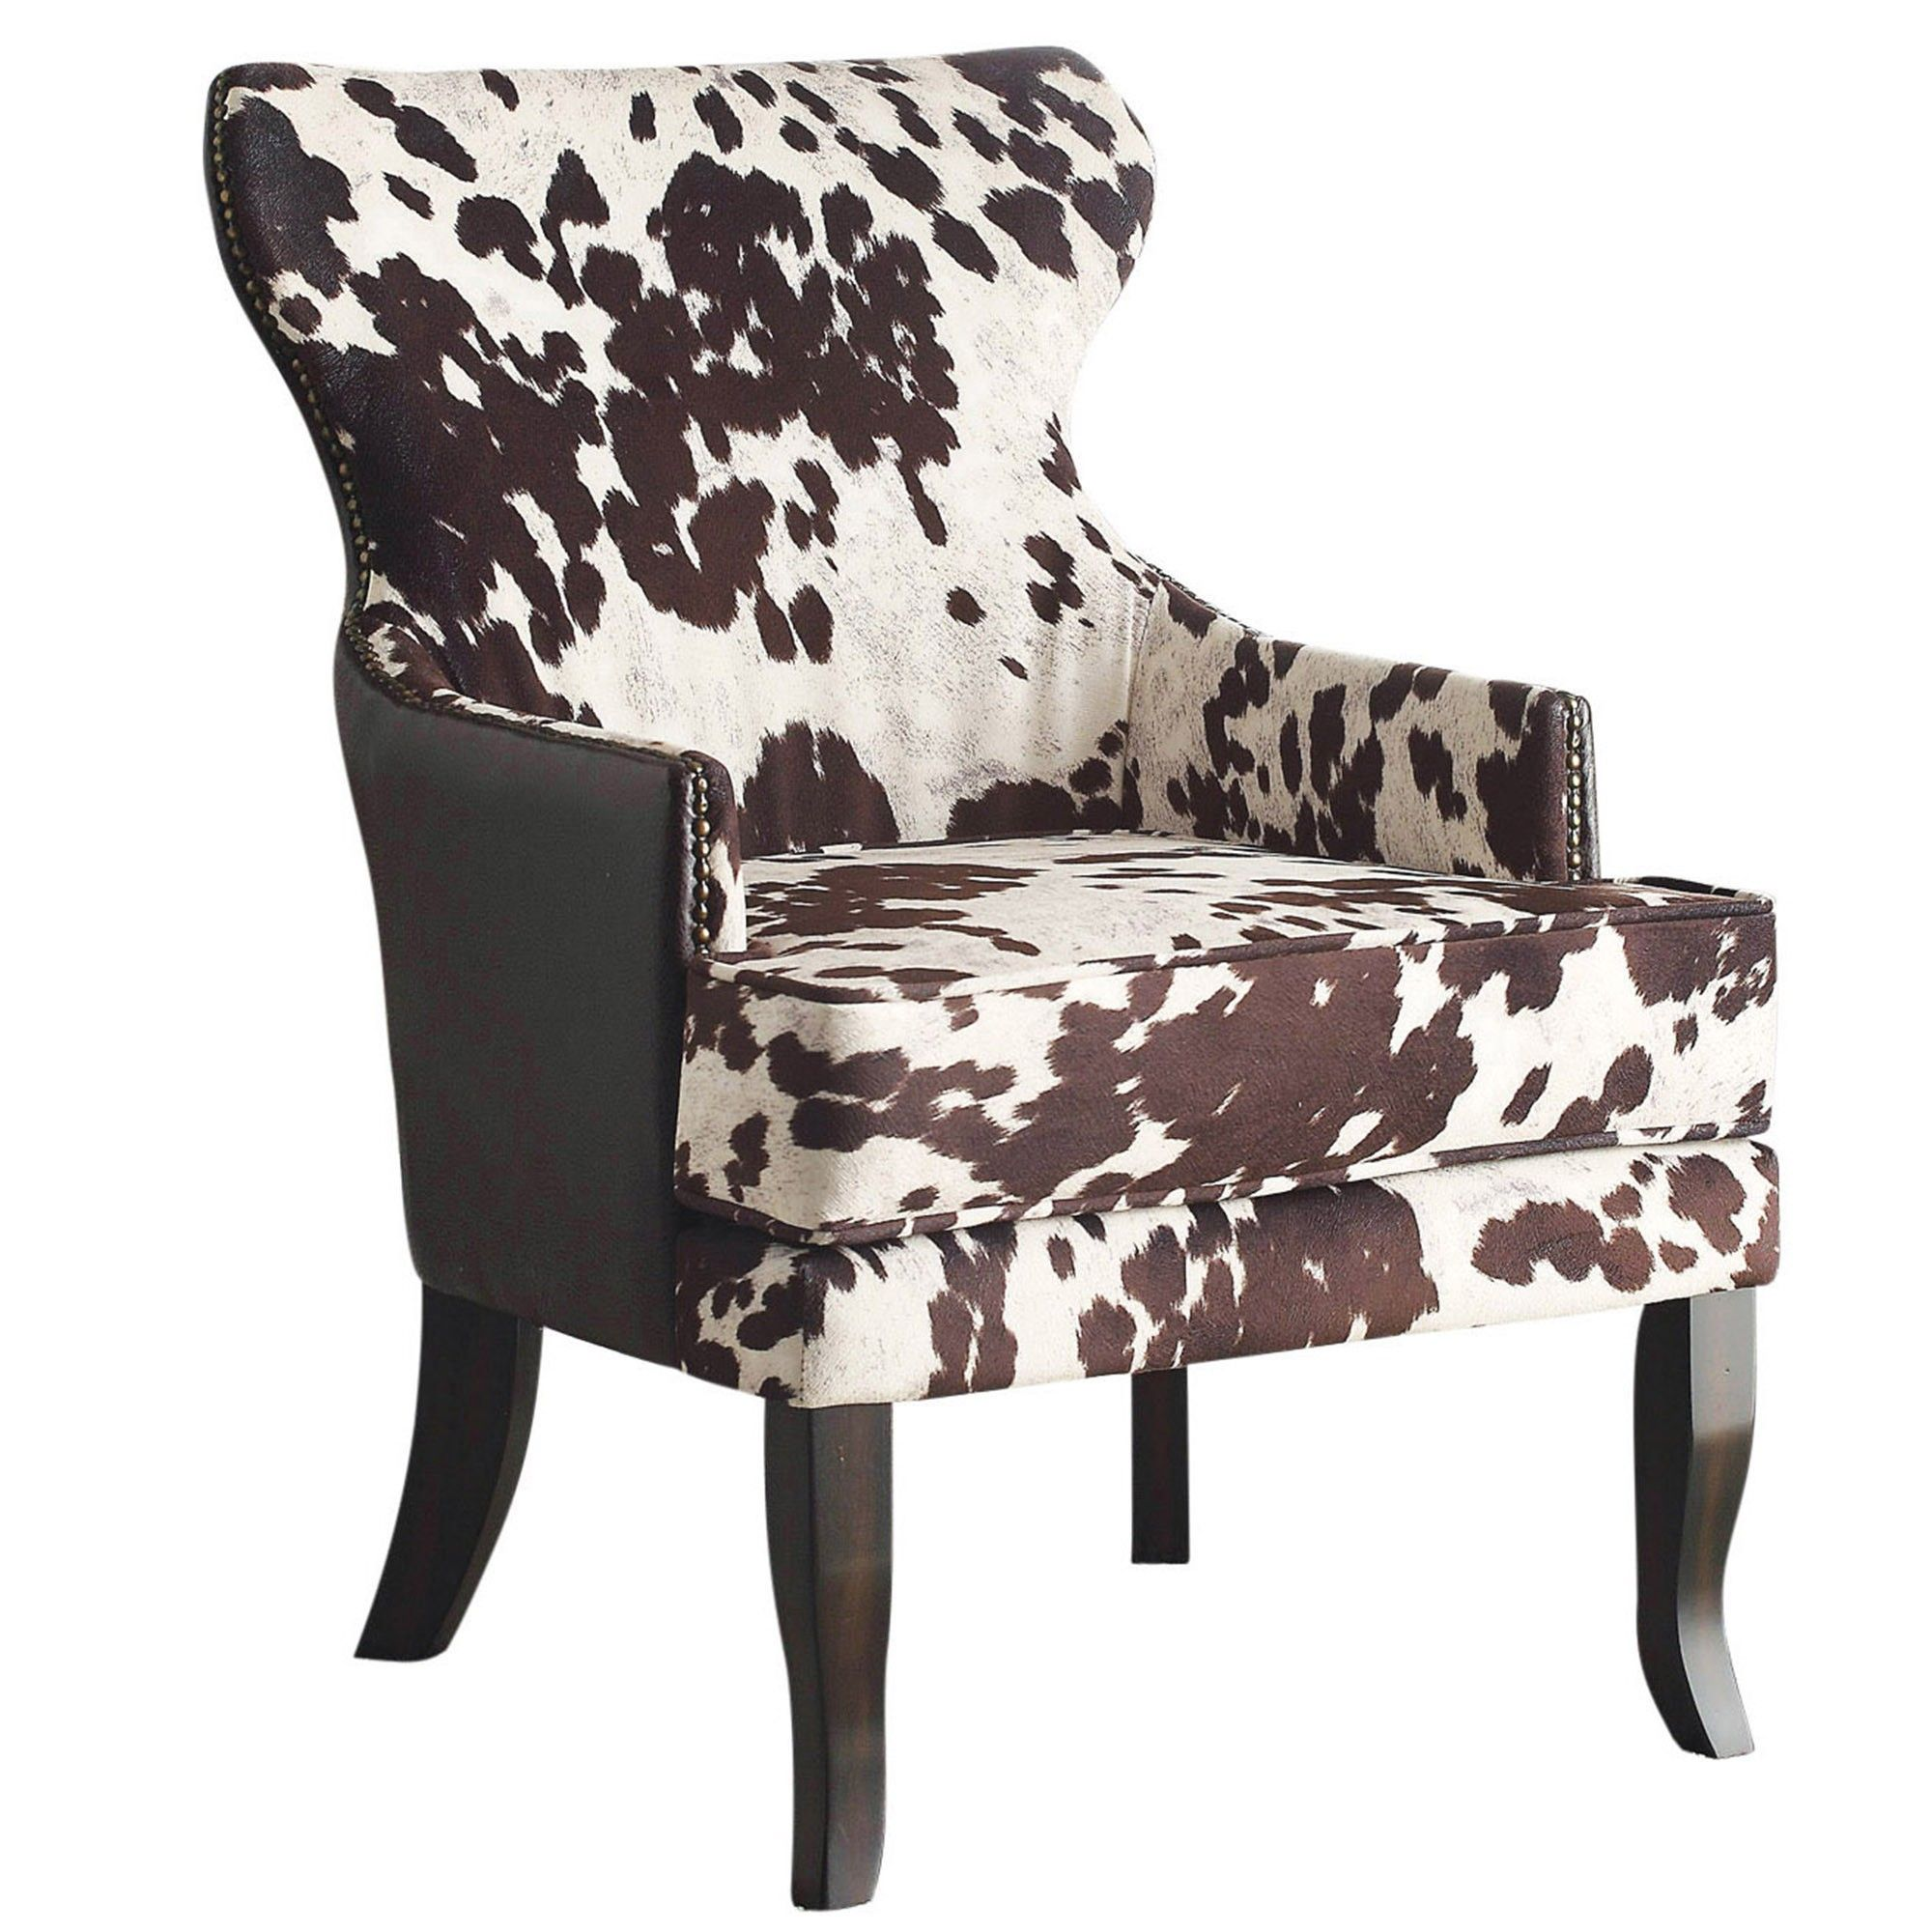 Angus Ii Accent Chair Upholstered Chairs Accent Chairs For